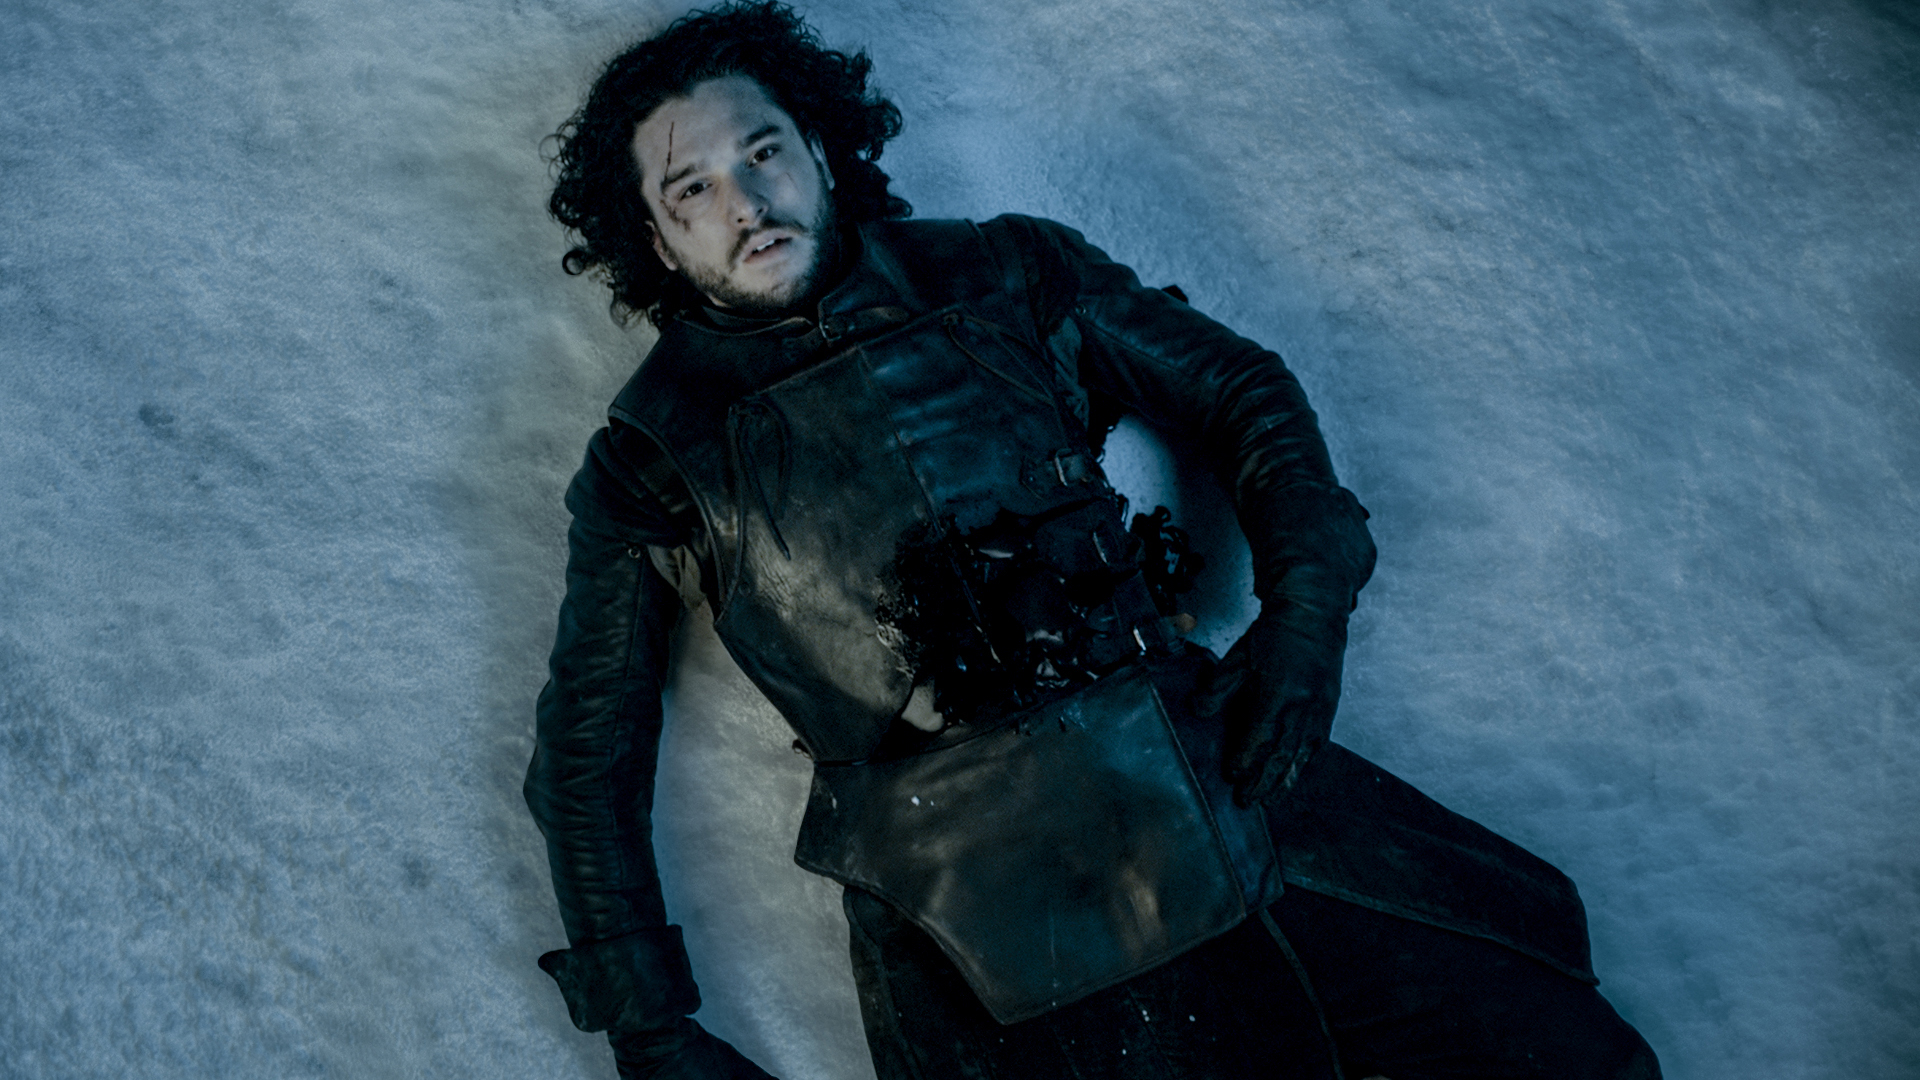 A still image of Kit Harington as Jon Snow on Game of Thrones.